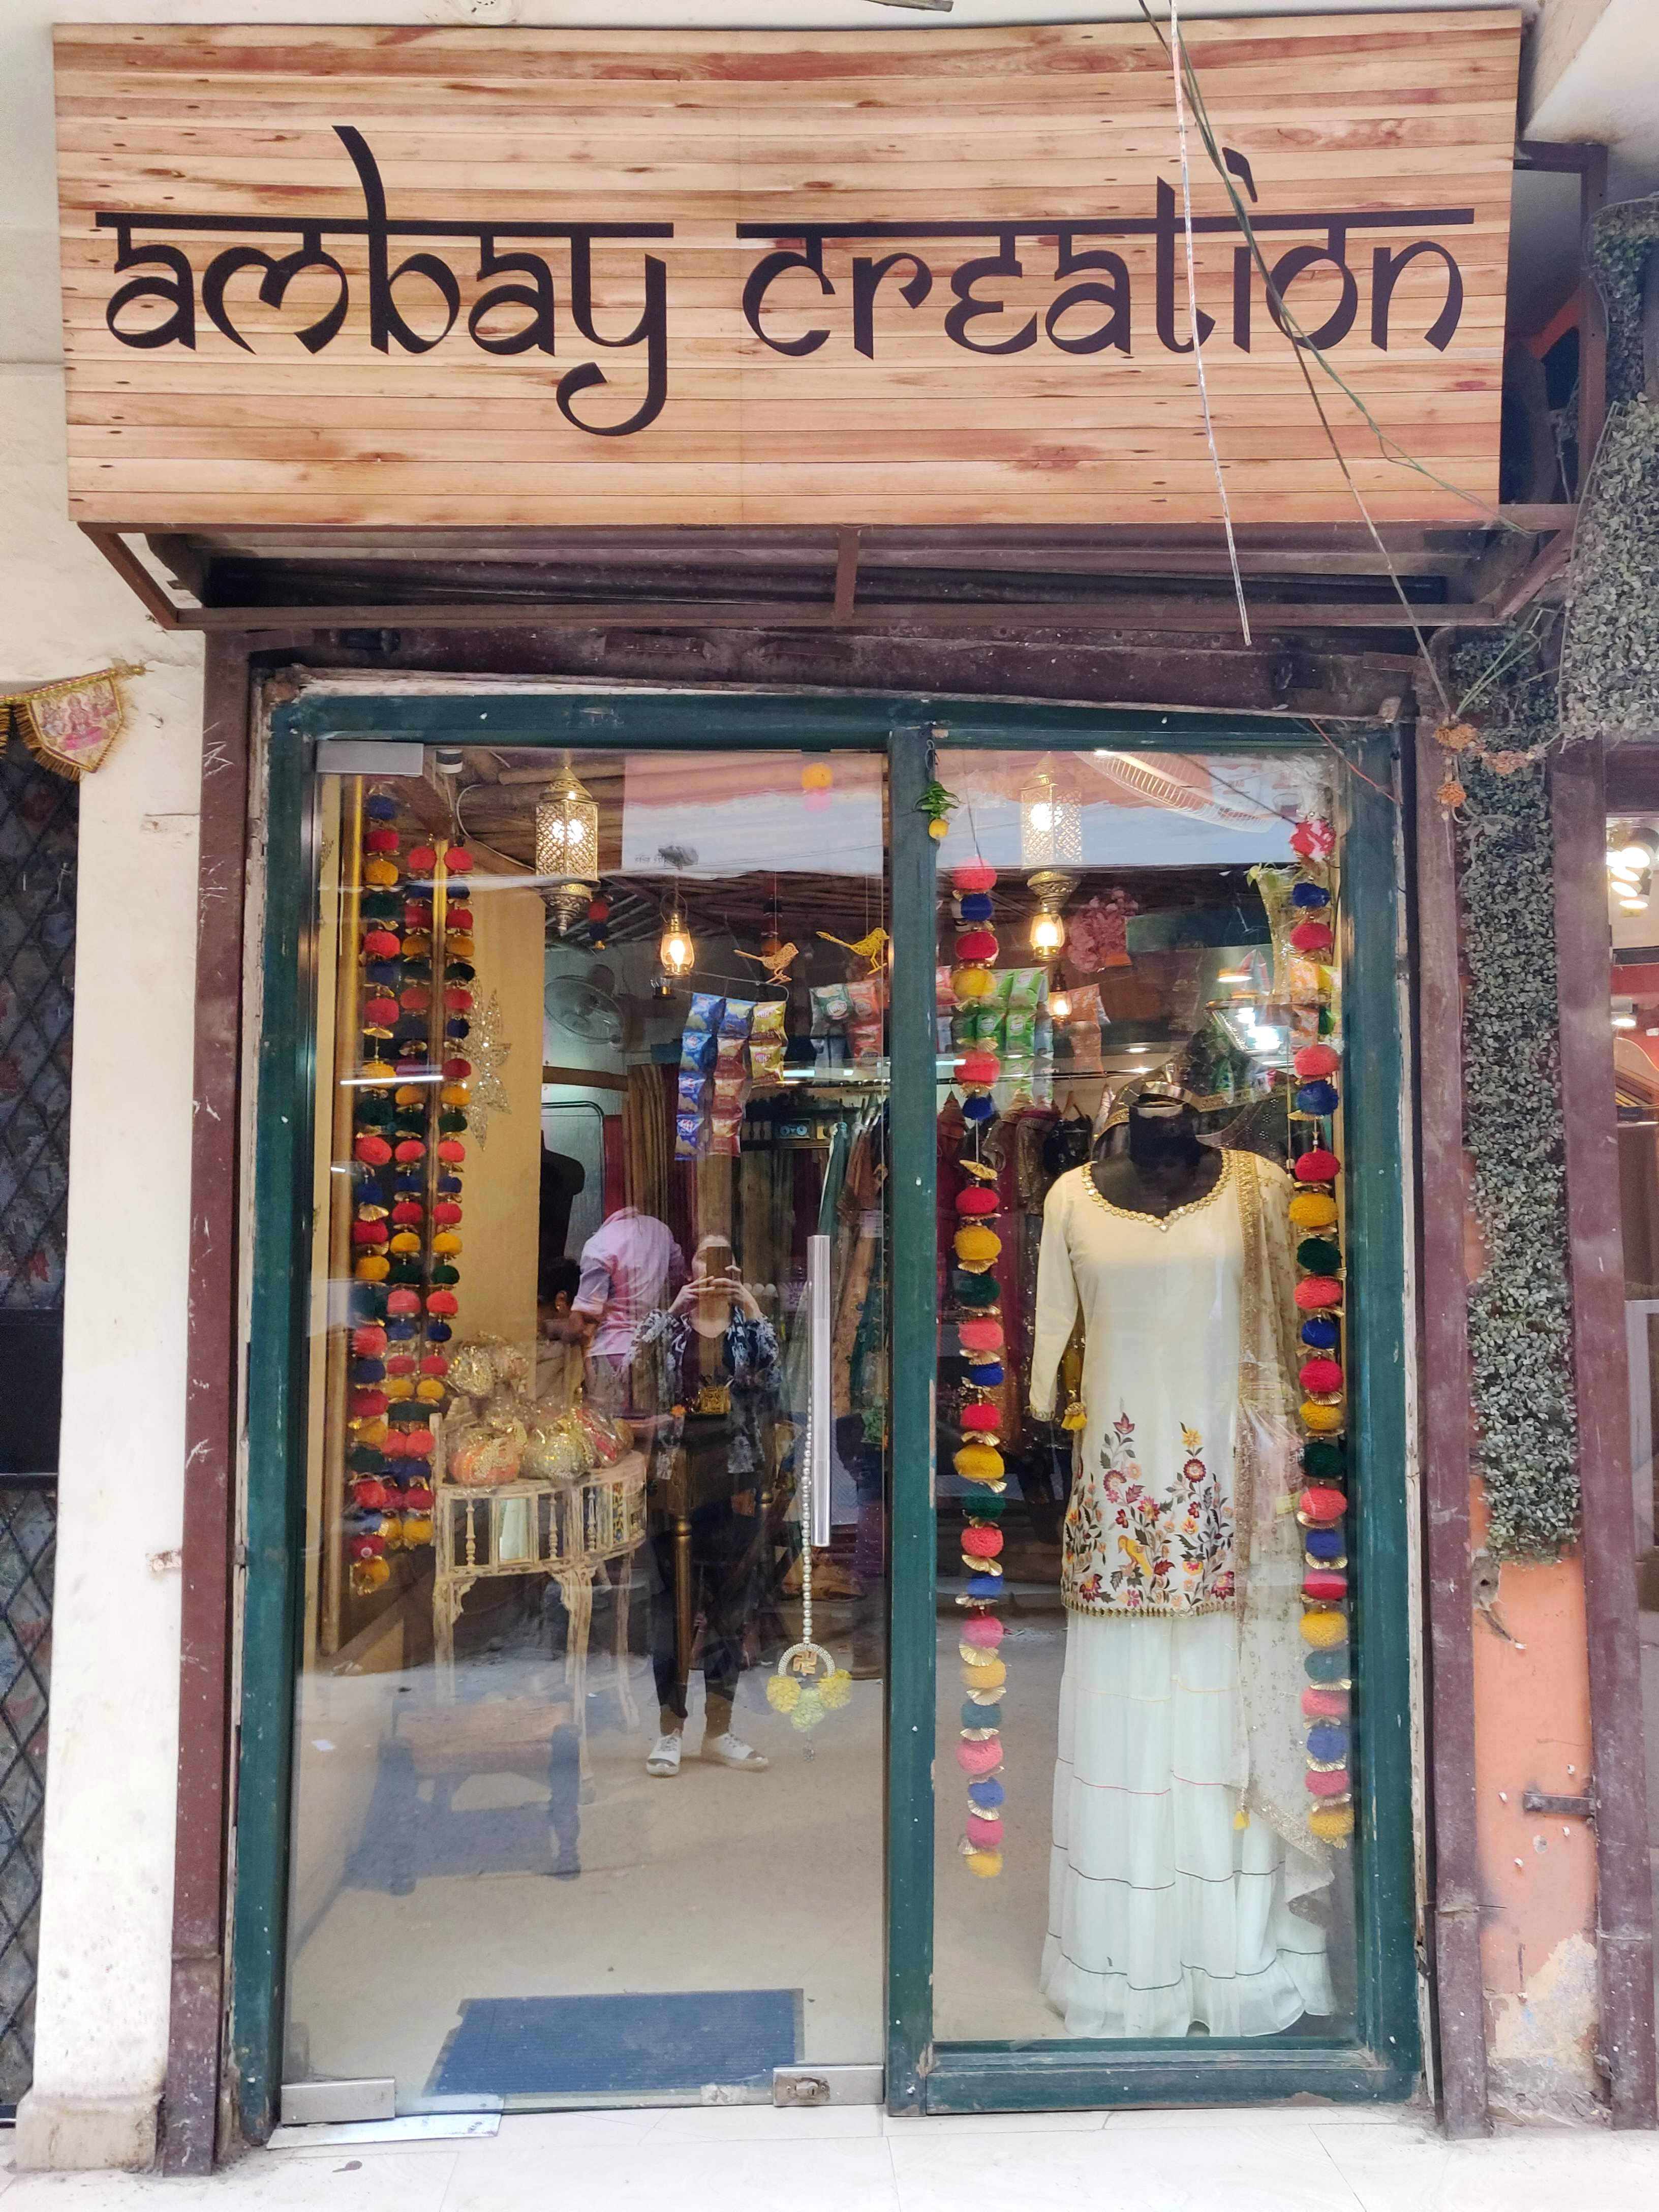 Boutique,Building,Display window,Door,Retail,Outlet store,Facade,Window,Fashion accessory,Shopping